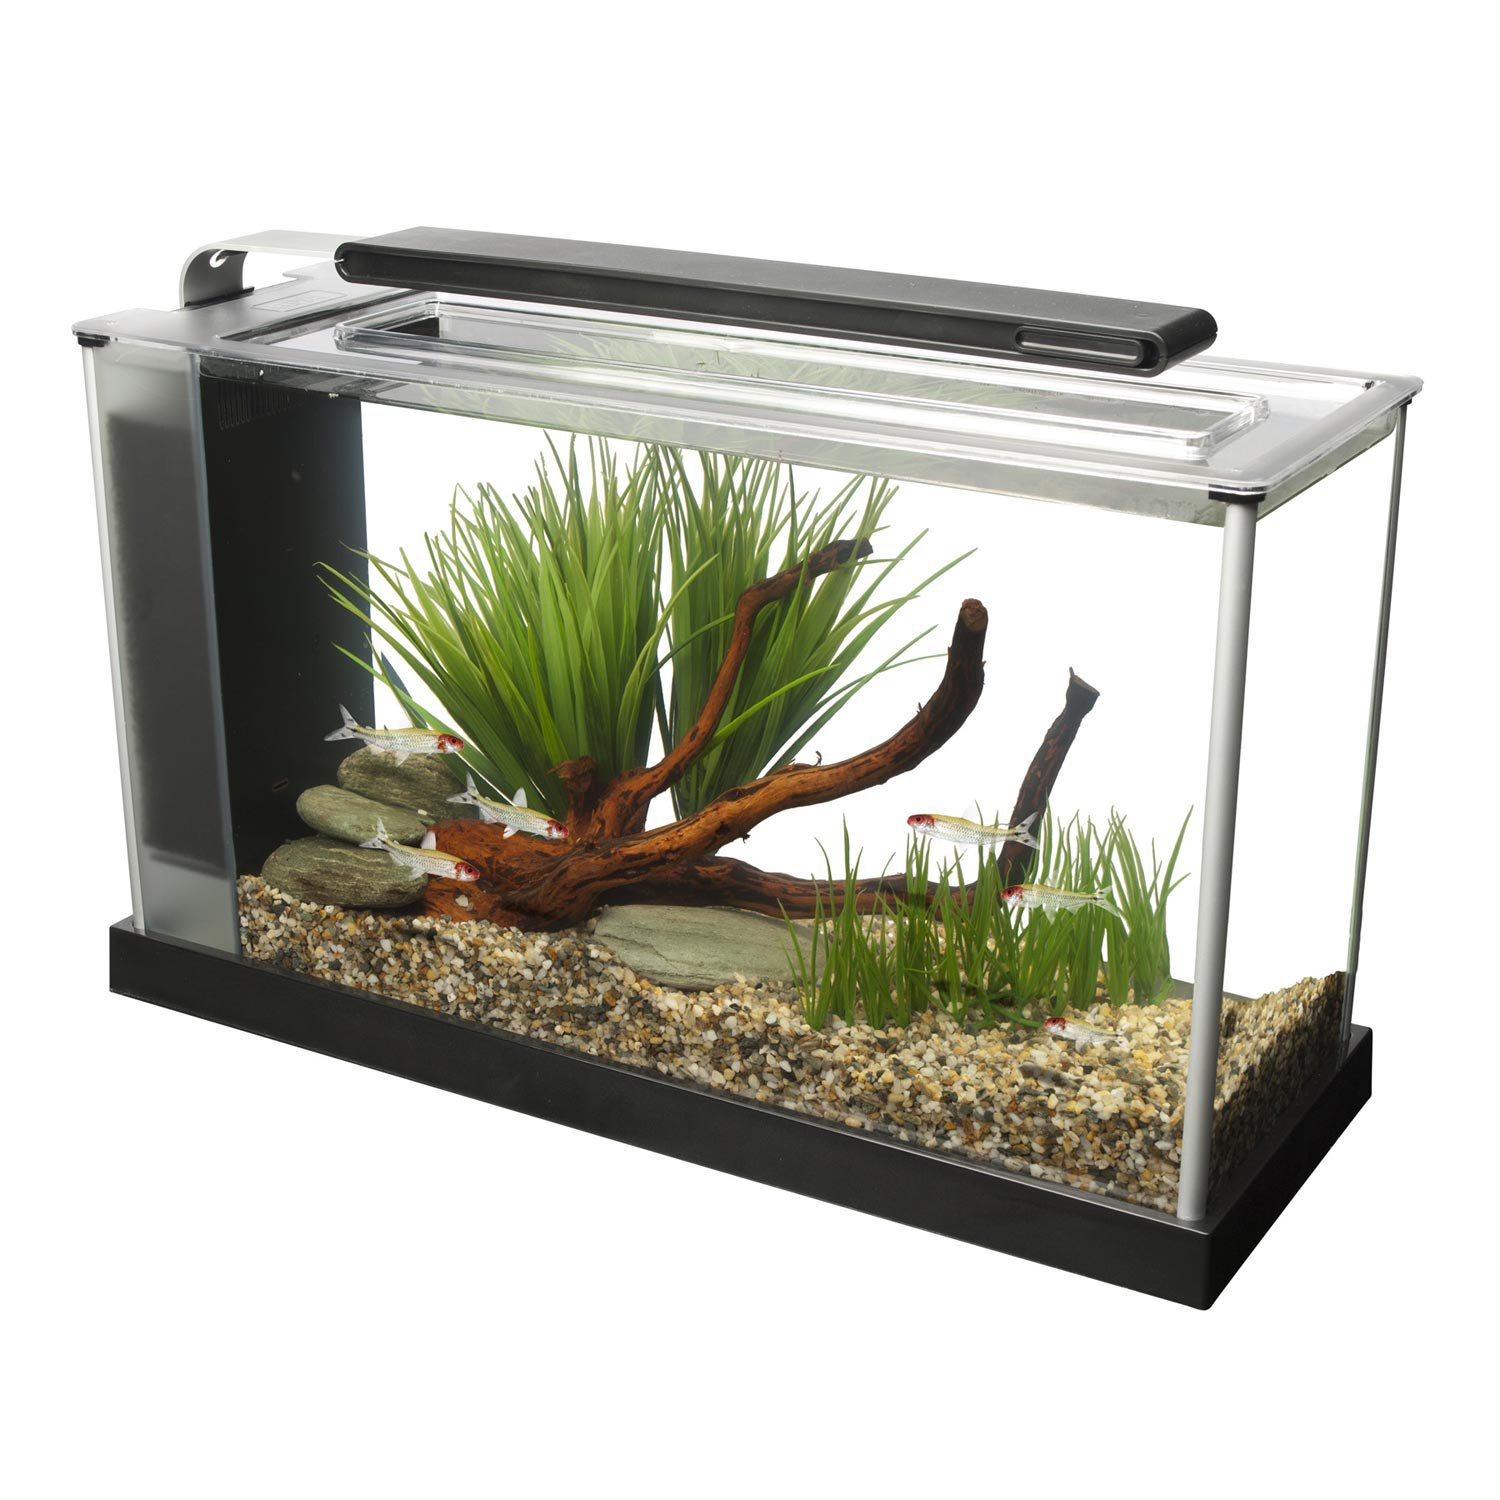 All glass aquarium fish tank - Fluval Spec V Aquarium Kit In Black